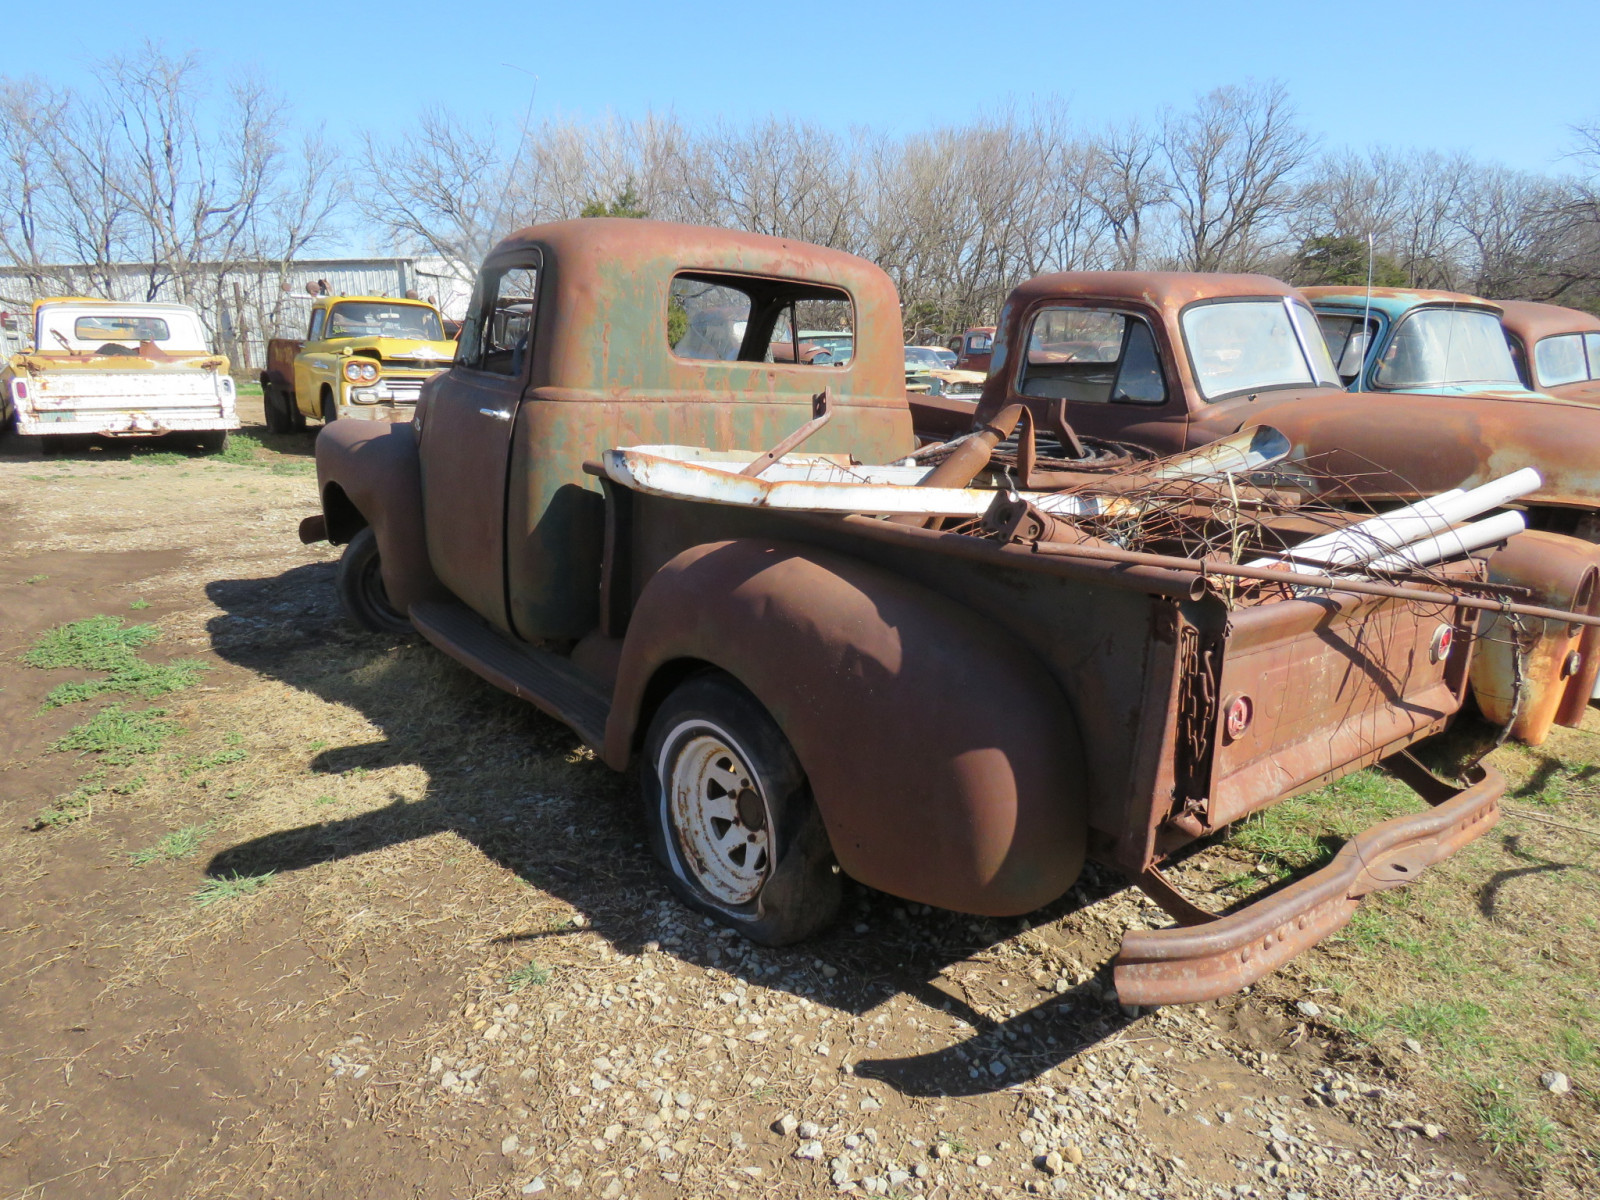 1953 Chevrolet Pickup - Image 3